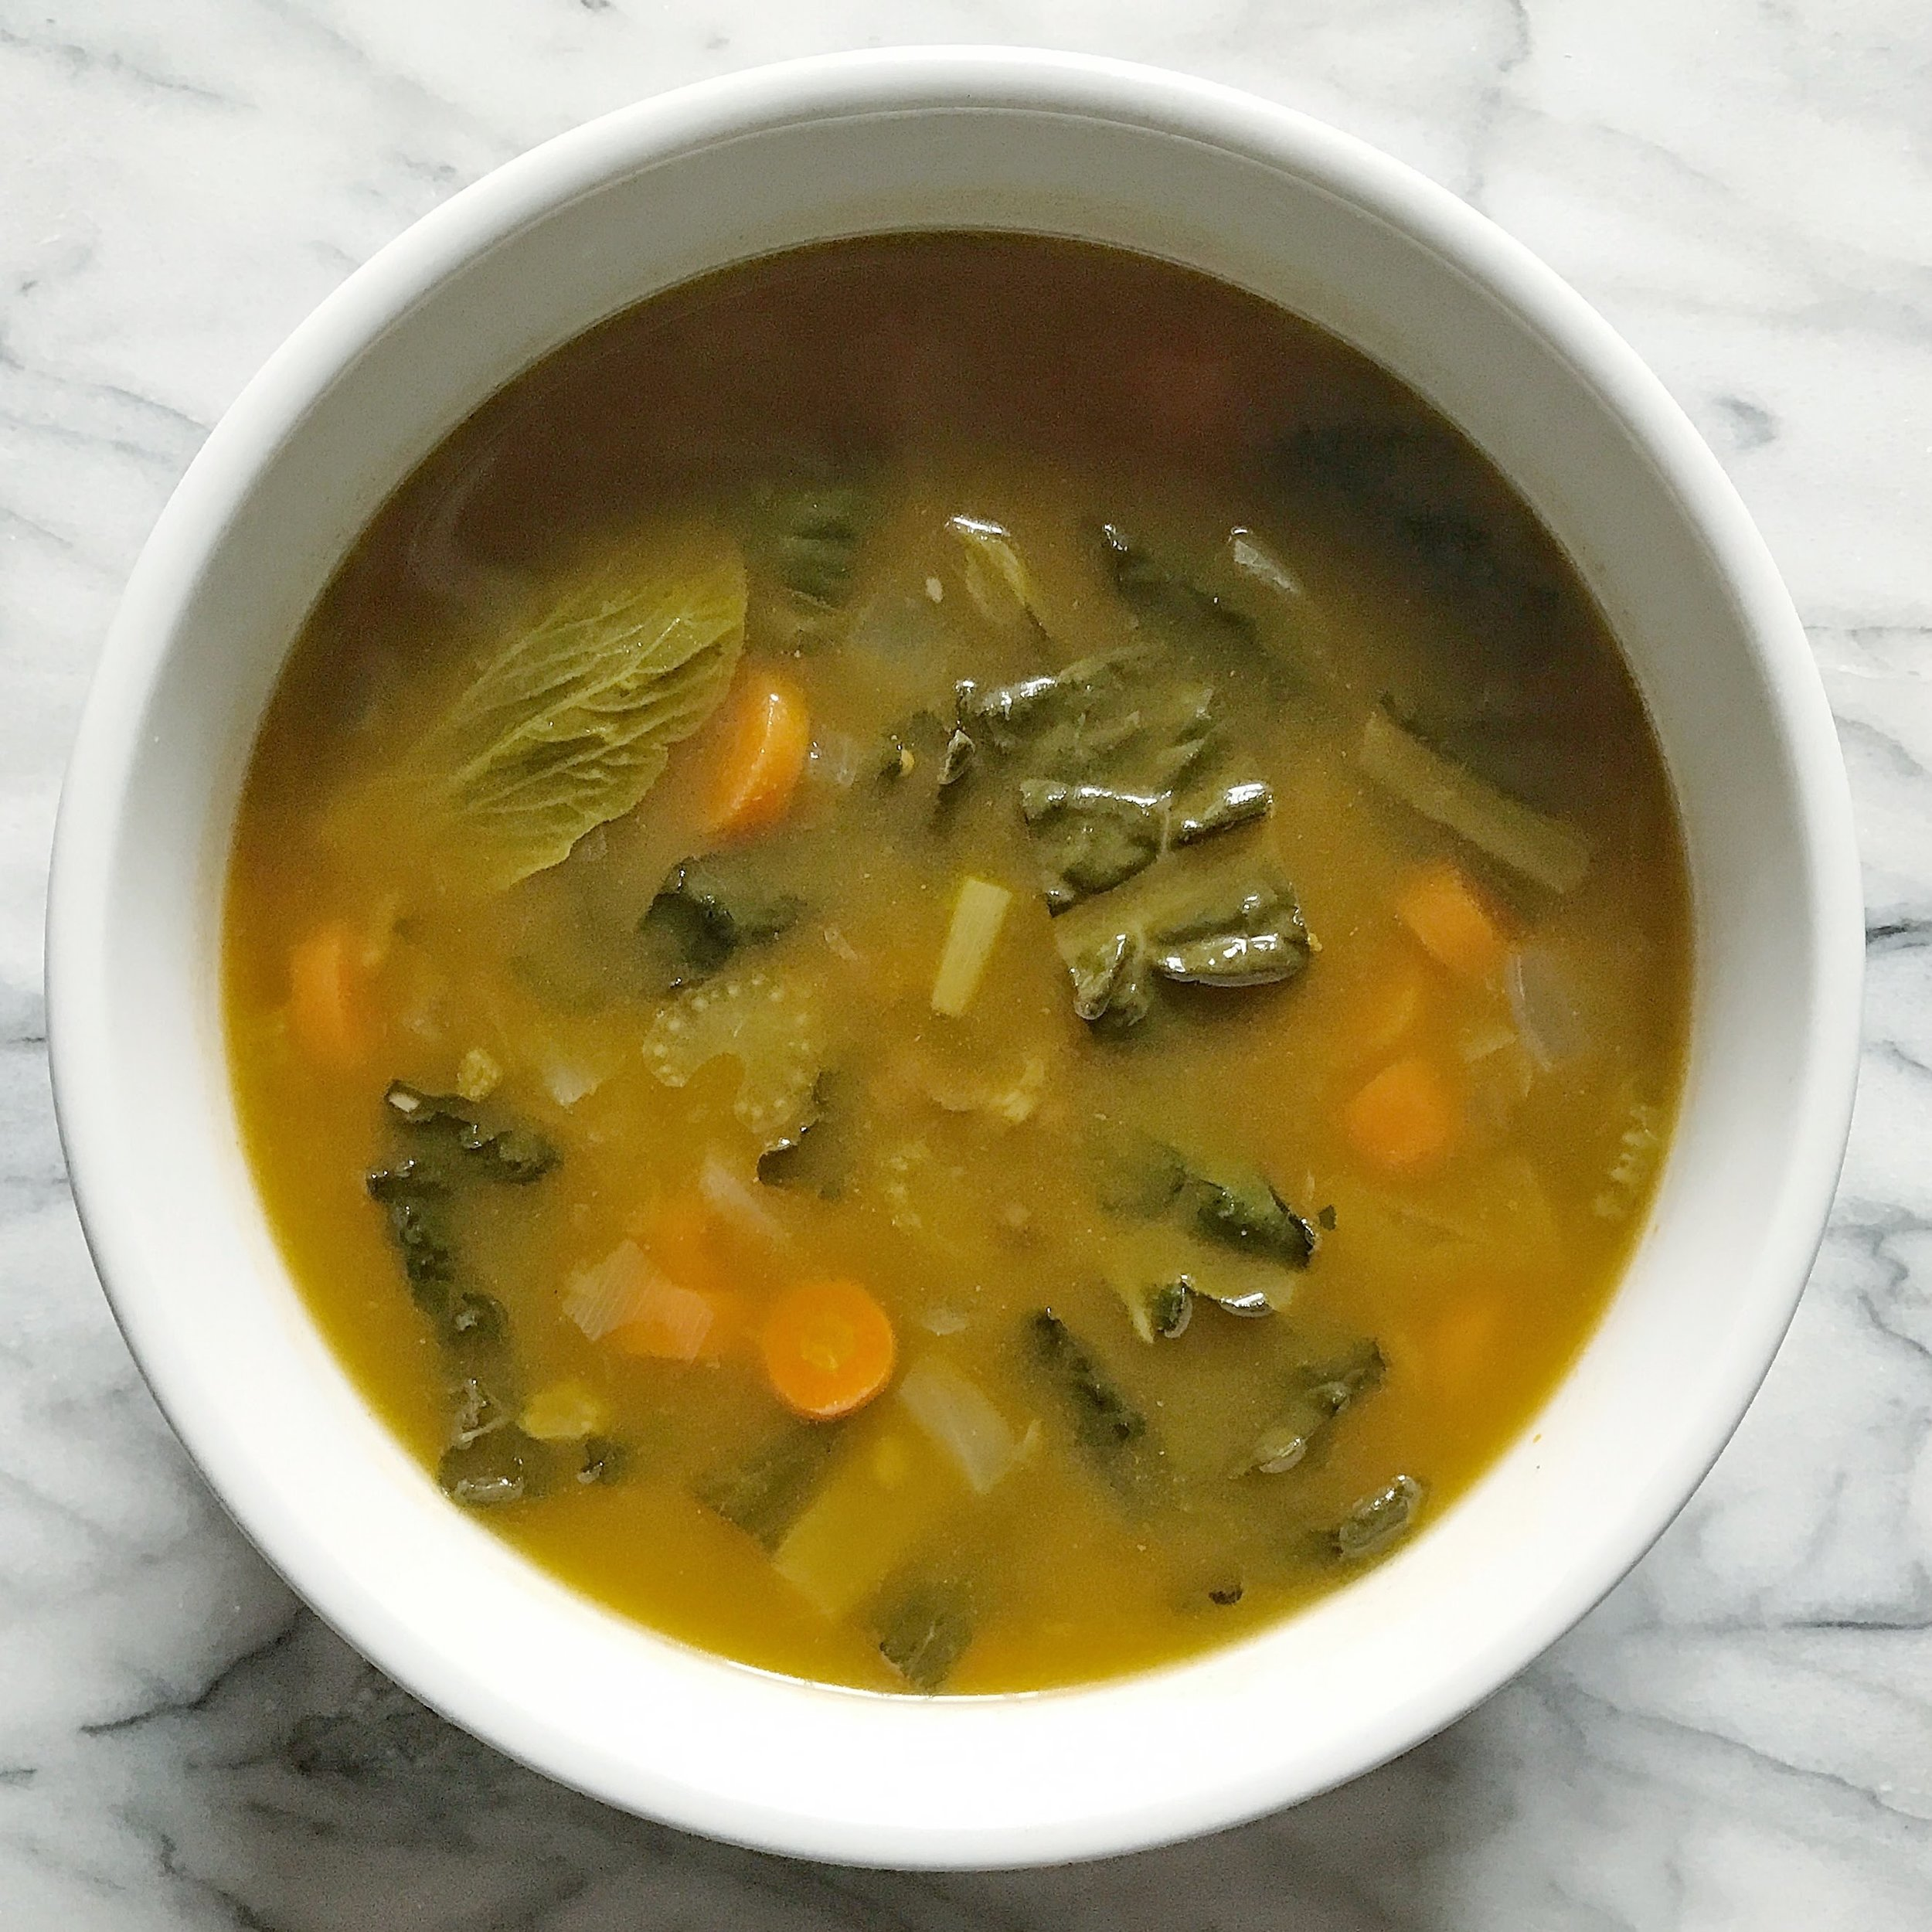 My WomanCode soup that I made a large batch of before the cleanse. It's made with veggie broth, Tuscan kale, carrots, onions, lentils, bok choy, and some herbs.